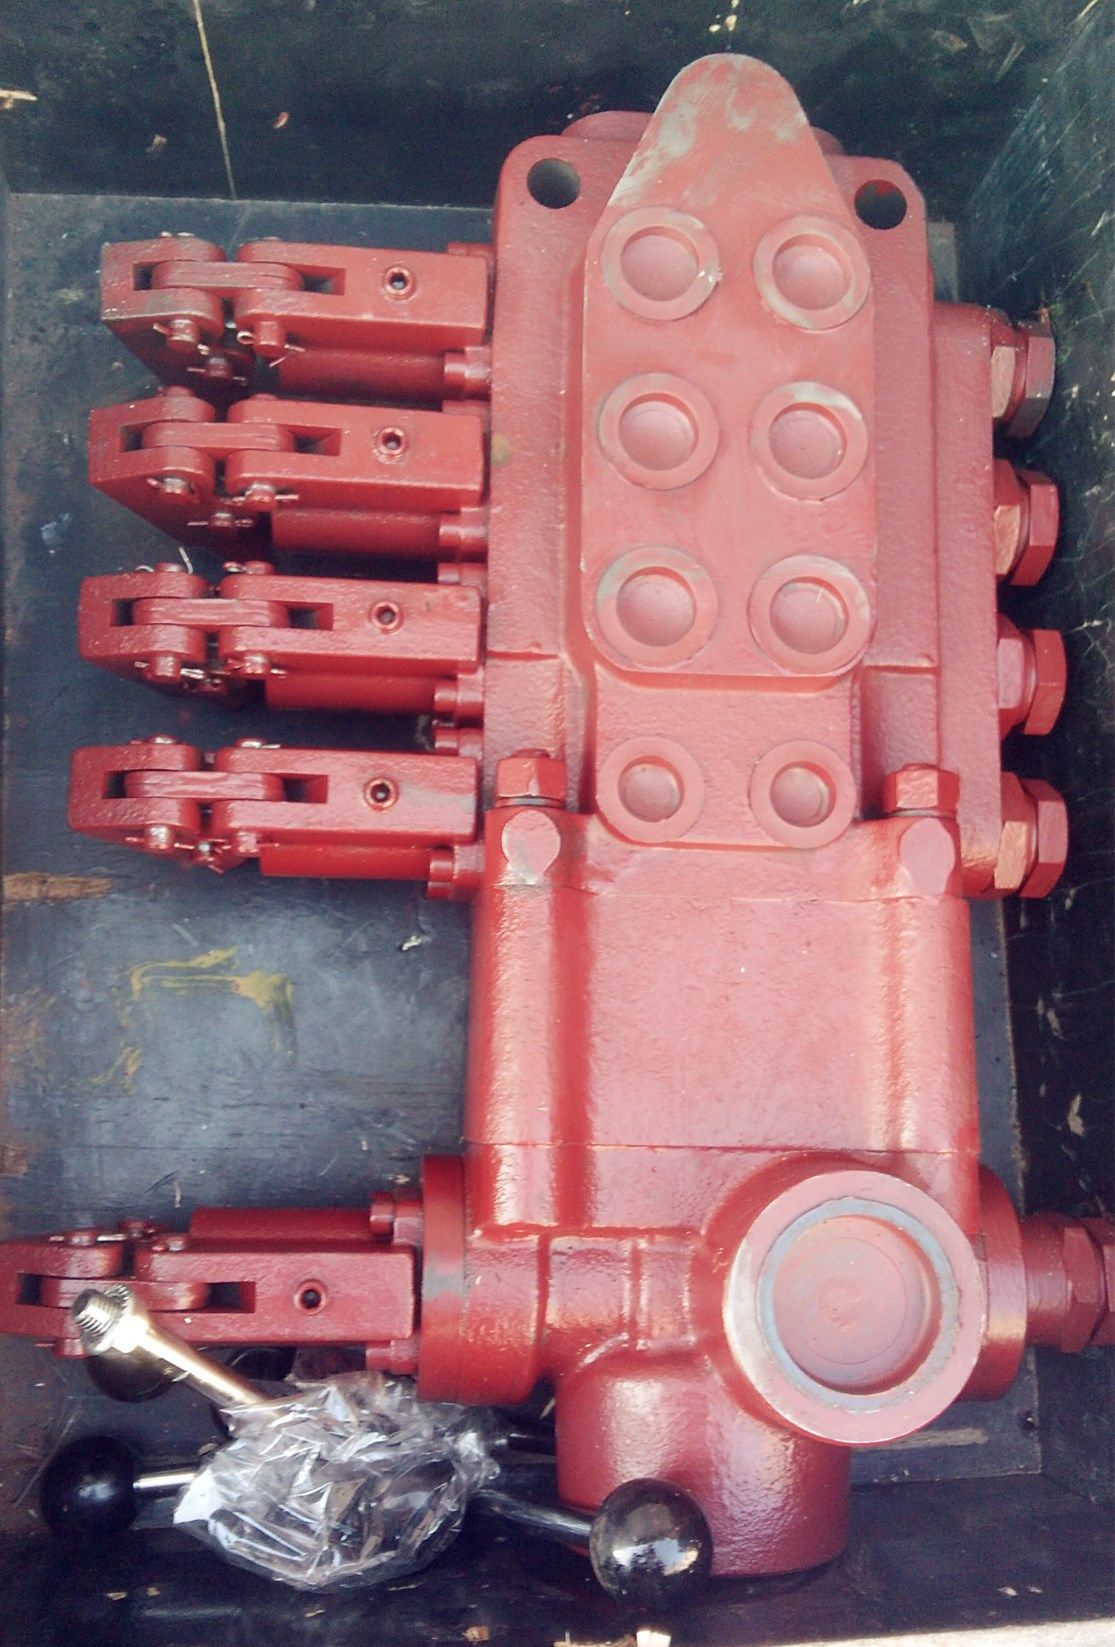 DRILL PANGOLIN valve bank is installed in CM351 Ingersoll